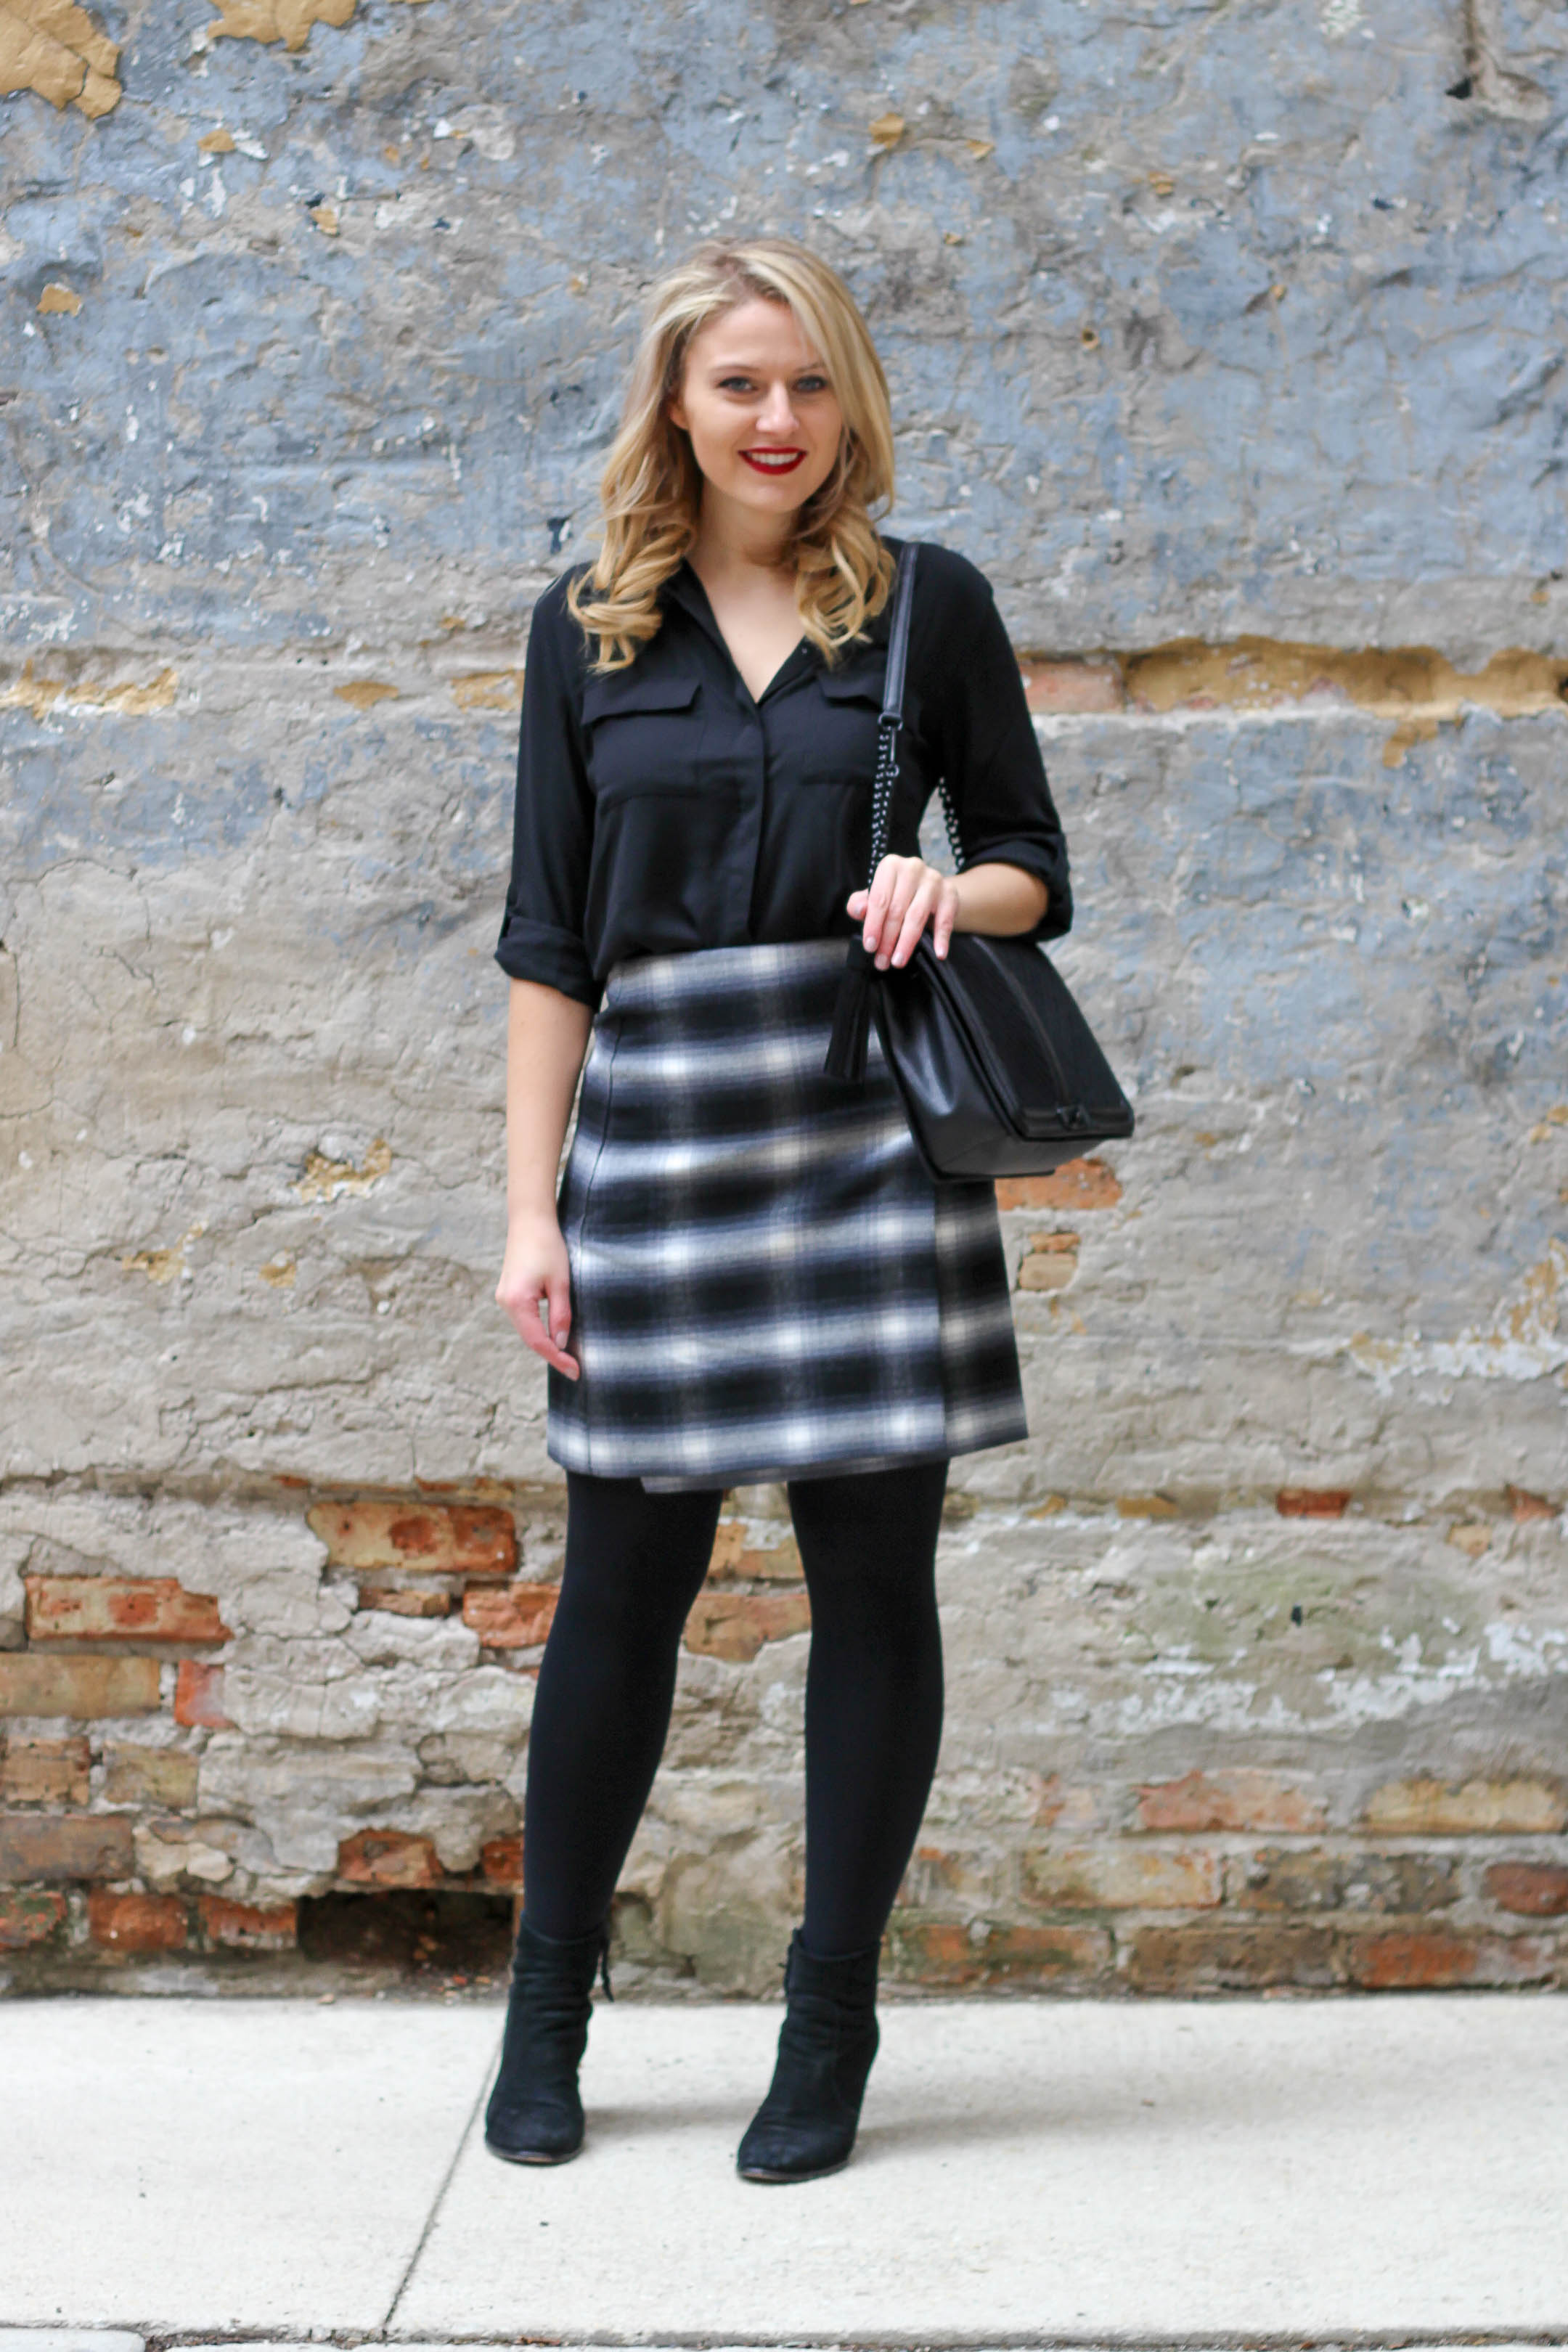 How to wear a plaid skirt to the office